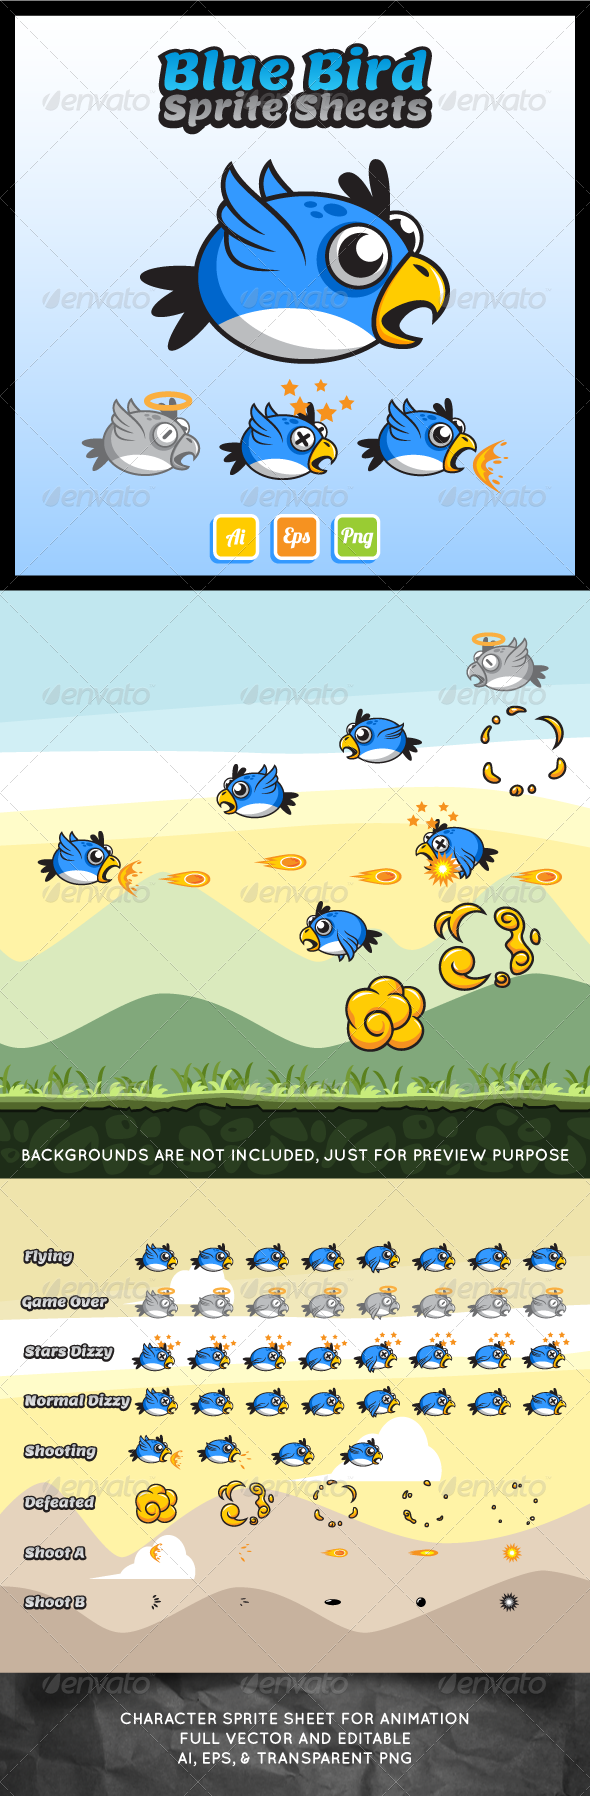 GraphicRiver Flying Blue Bird Sprite Sheet 7396361